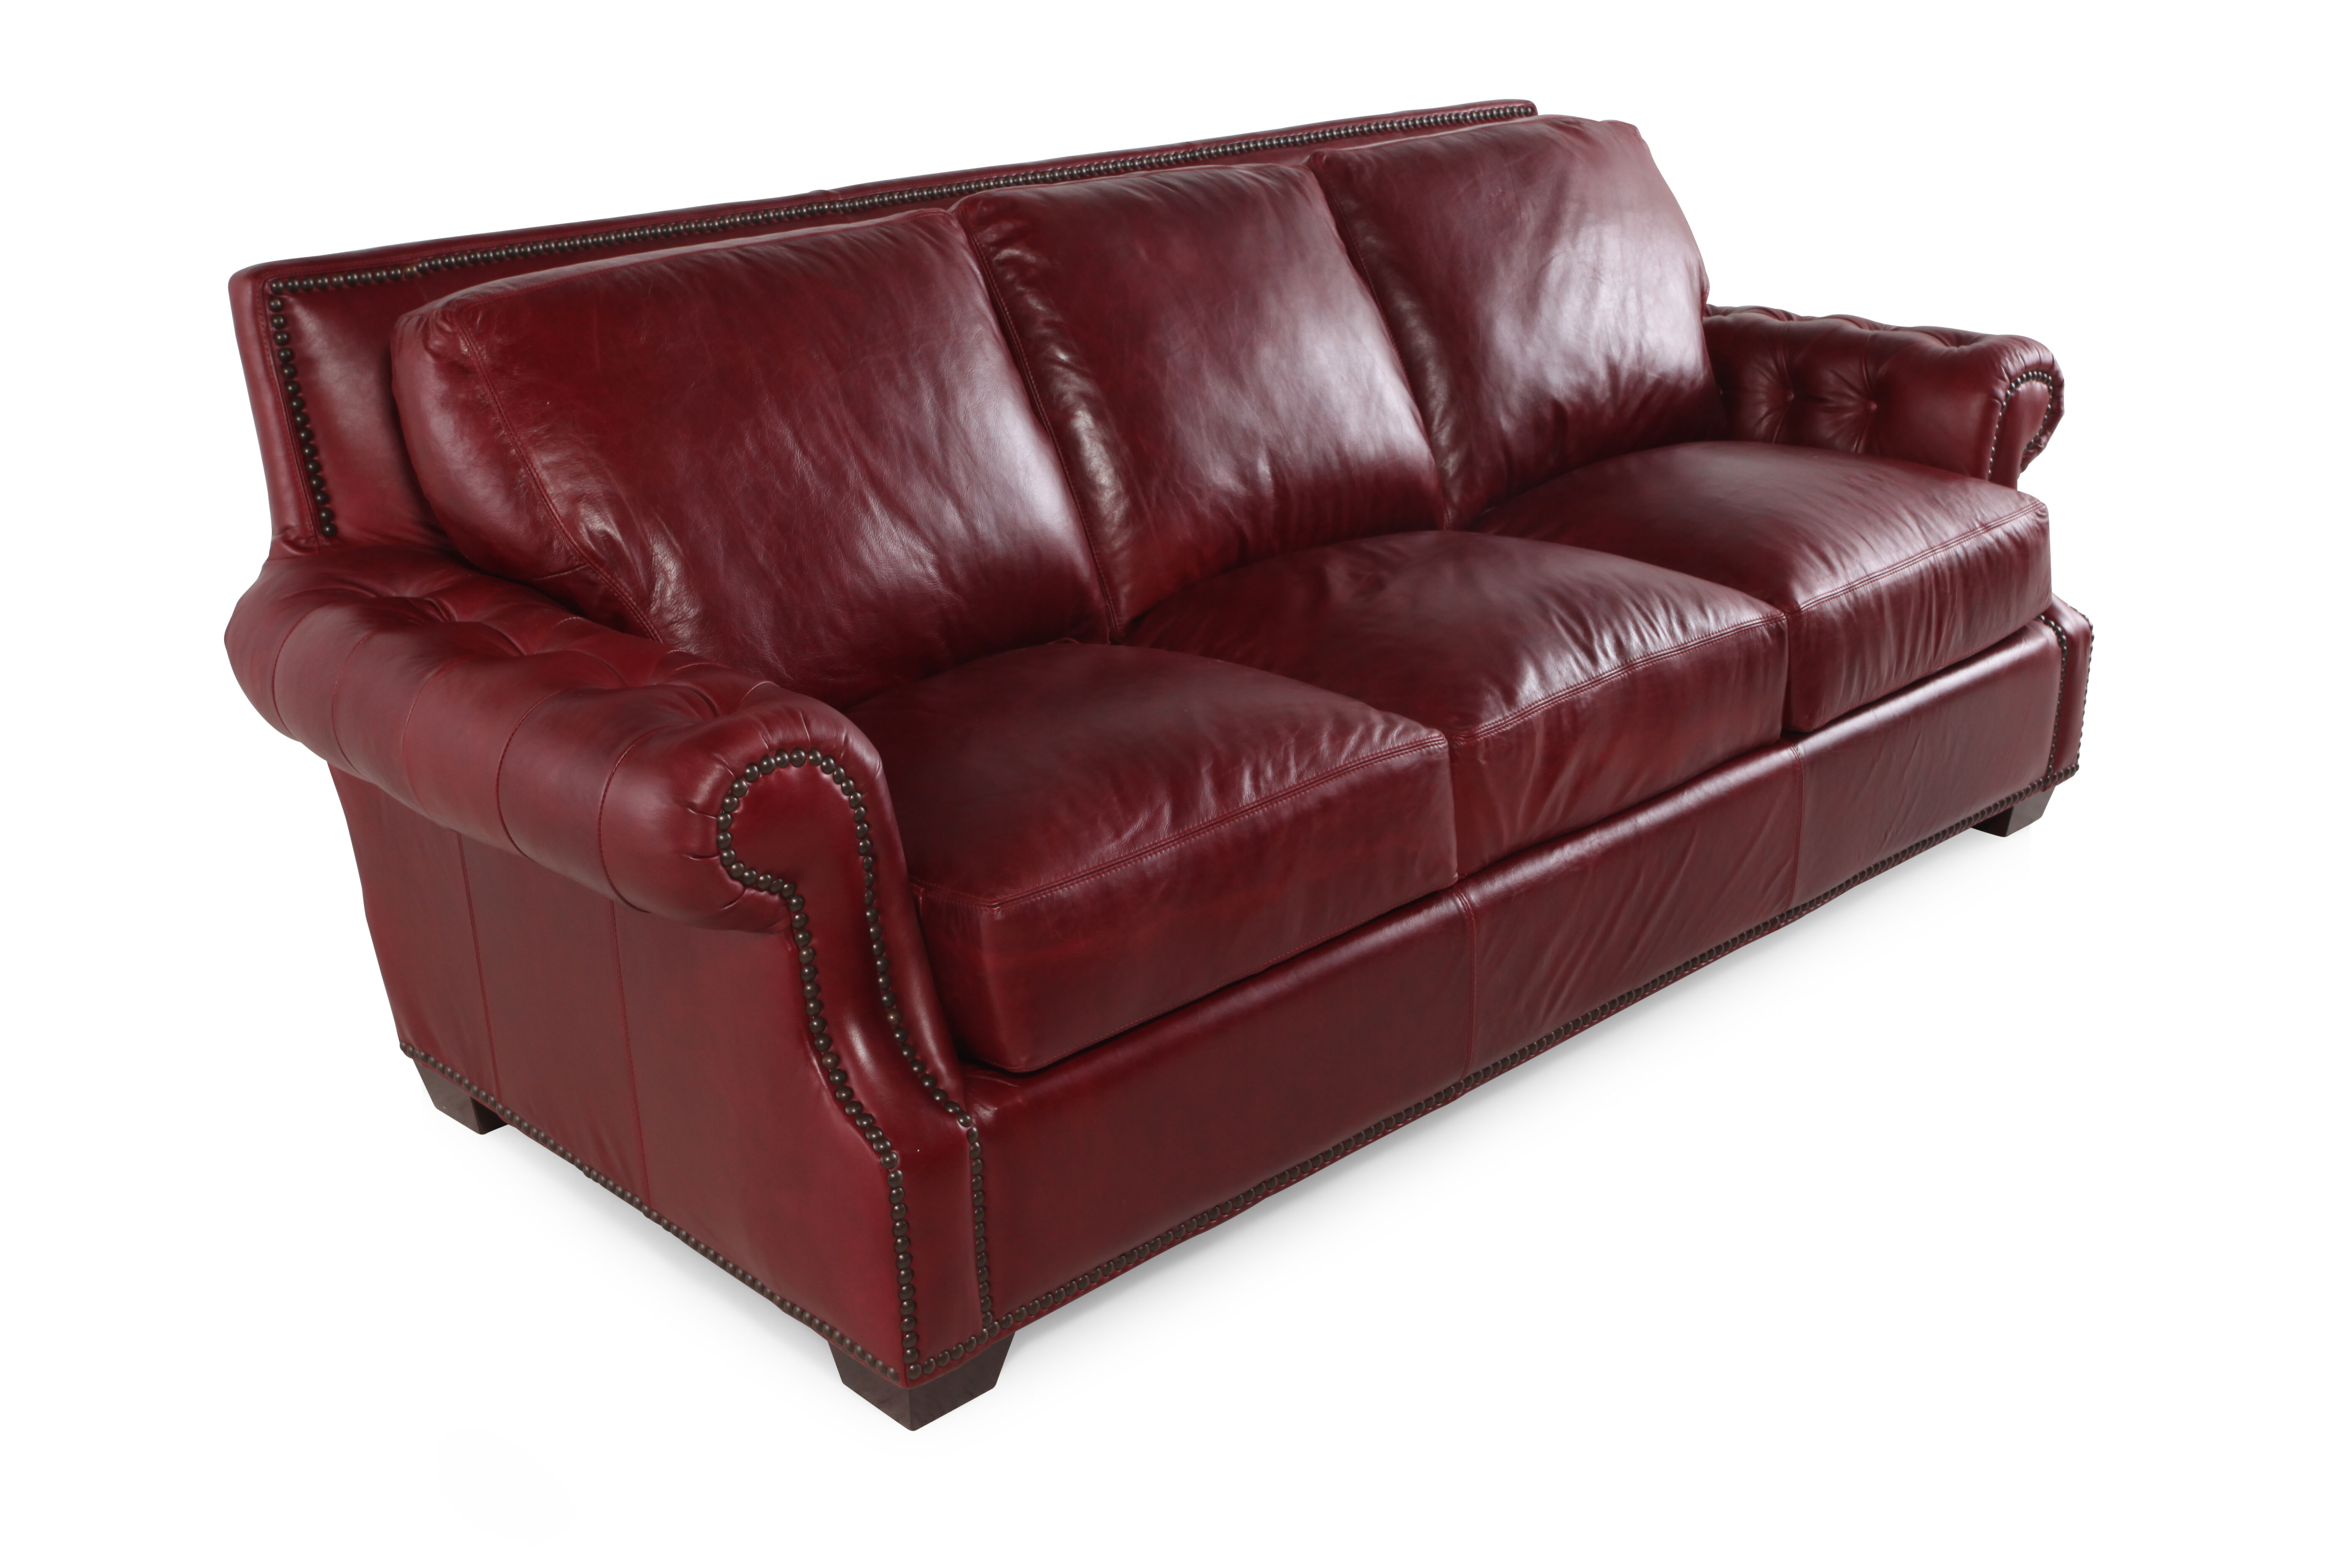 leather red sofa ikea with chaise usa marsala mathis brothers furniture